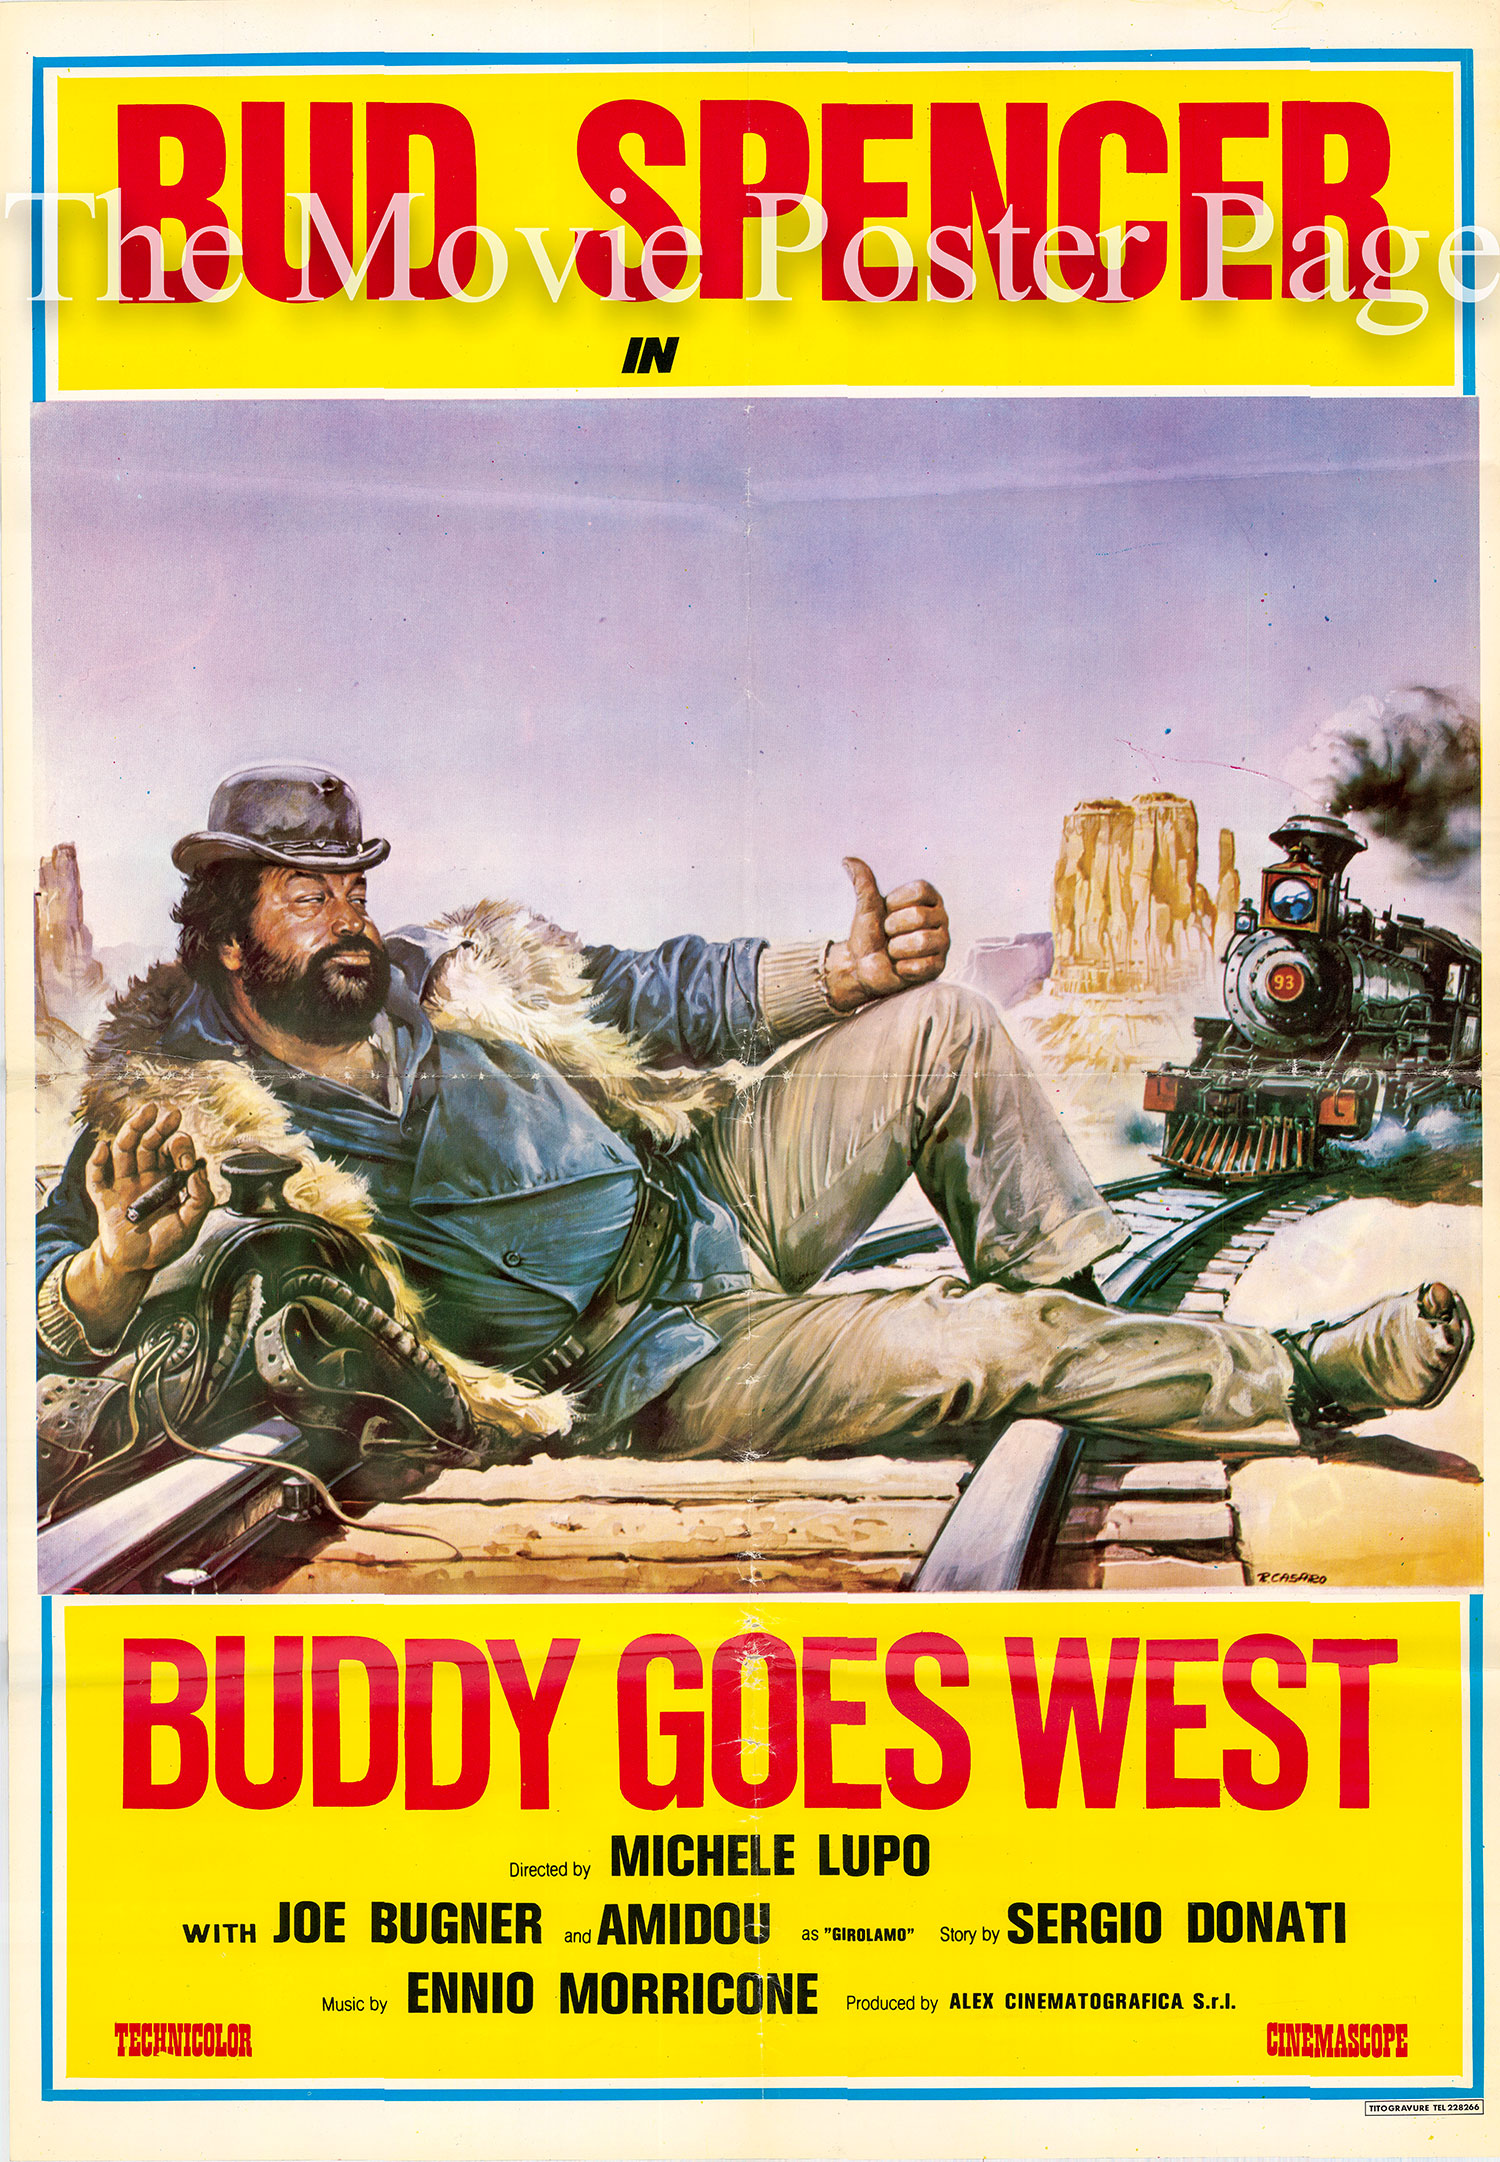 This is an image of sn Italian promotional poster for the 1981 Michele Lupo film Buddy Goes West, starring Bud Spencer.